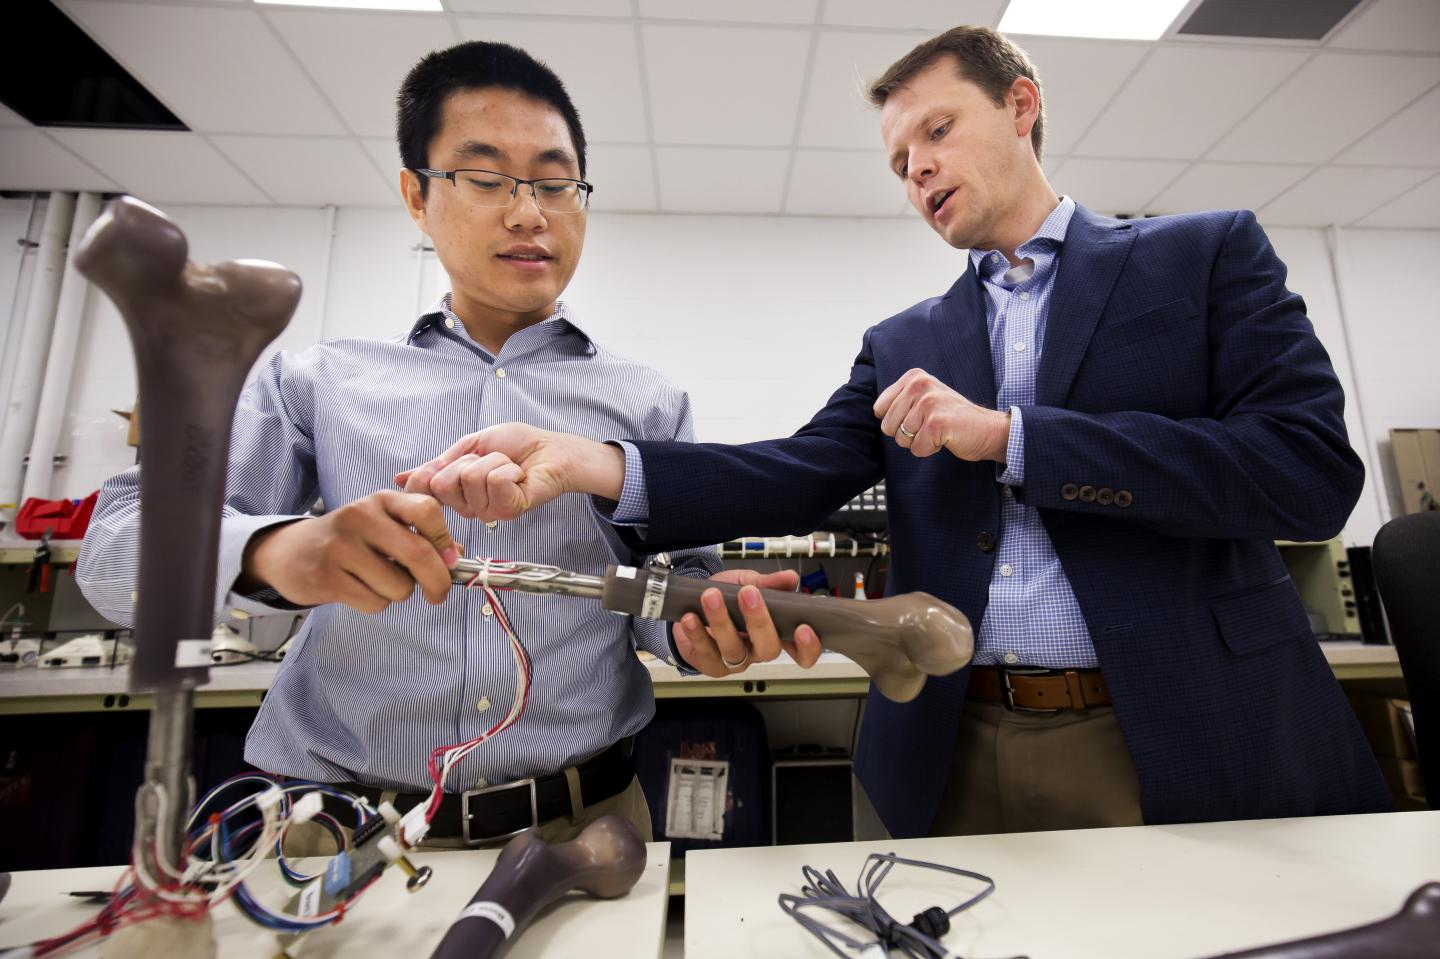 University of Michigan's Dr. Jerome Lynch examines a prototype of their smart artificial limbs with research fellow Wentao Wang.